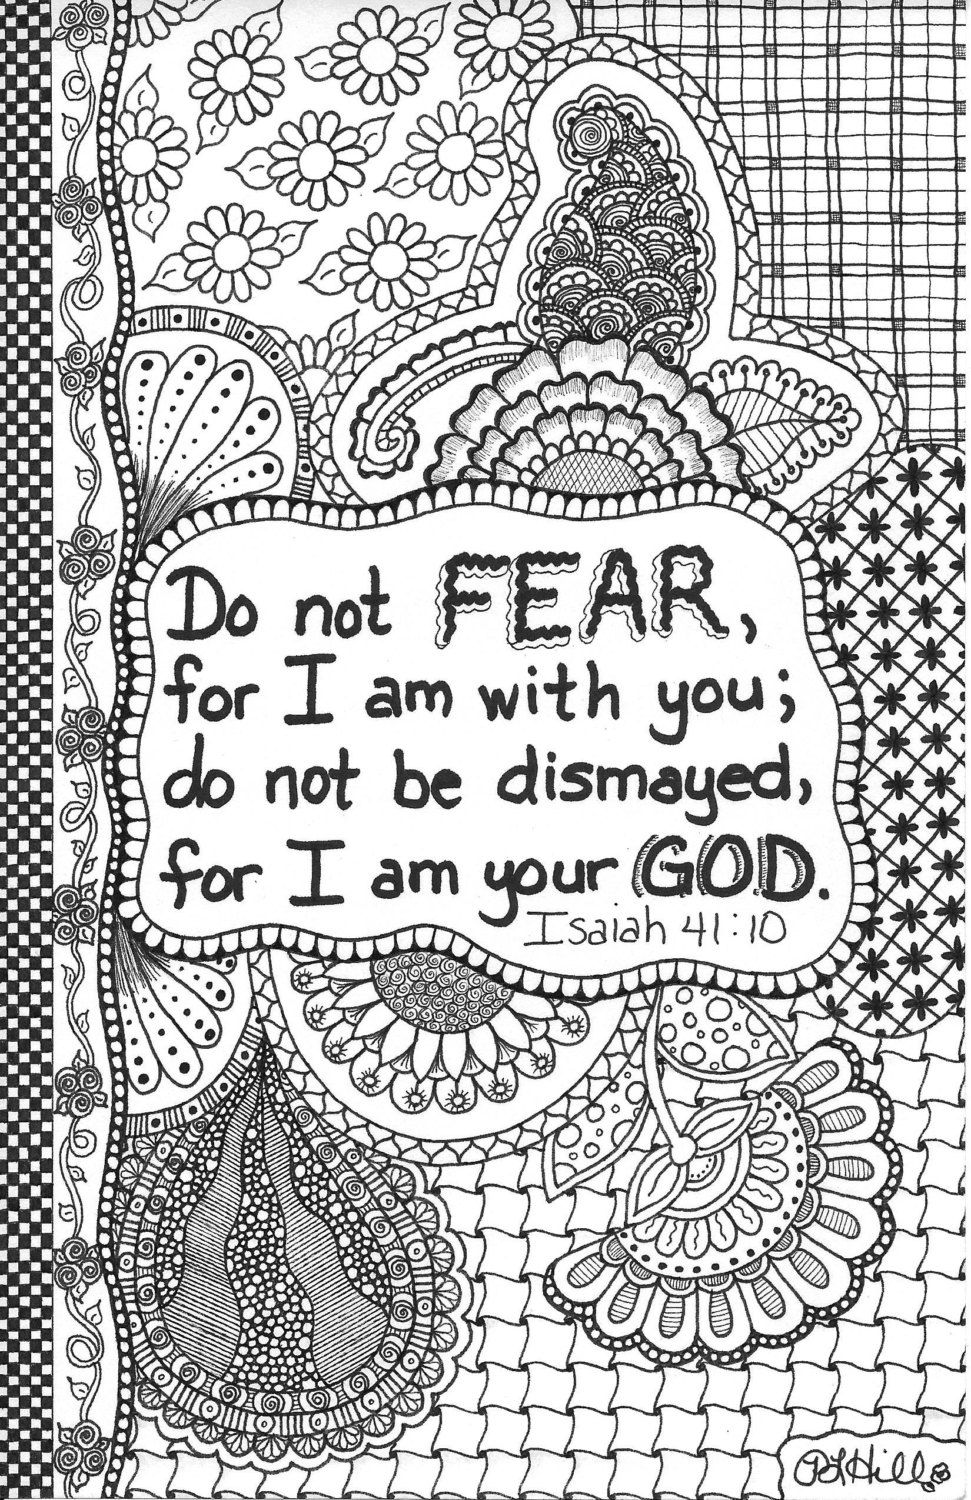 An Original Doodle By Plhill Available On Etsy Doodles Do Not